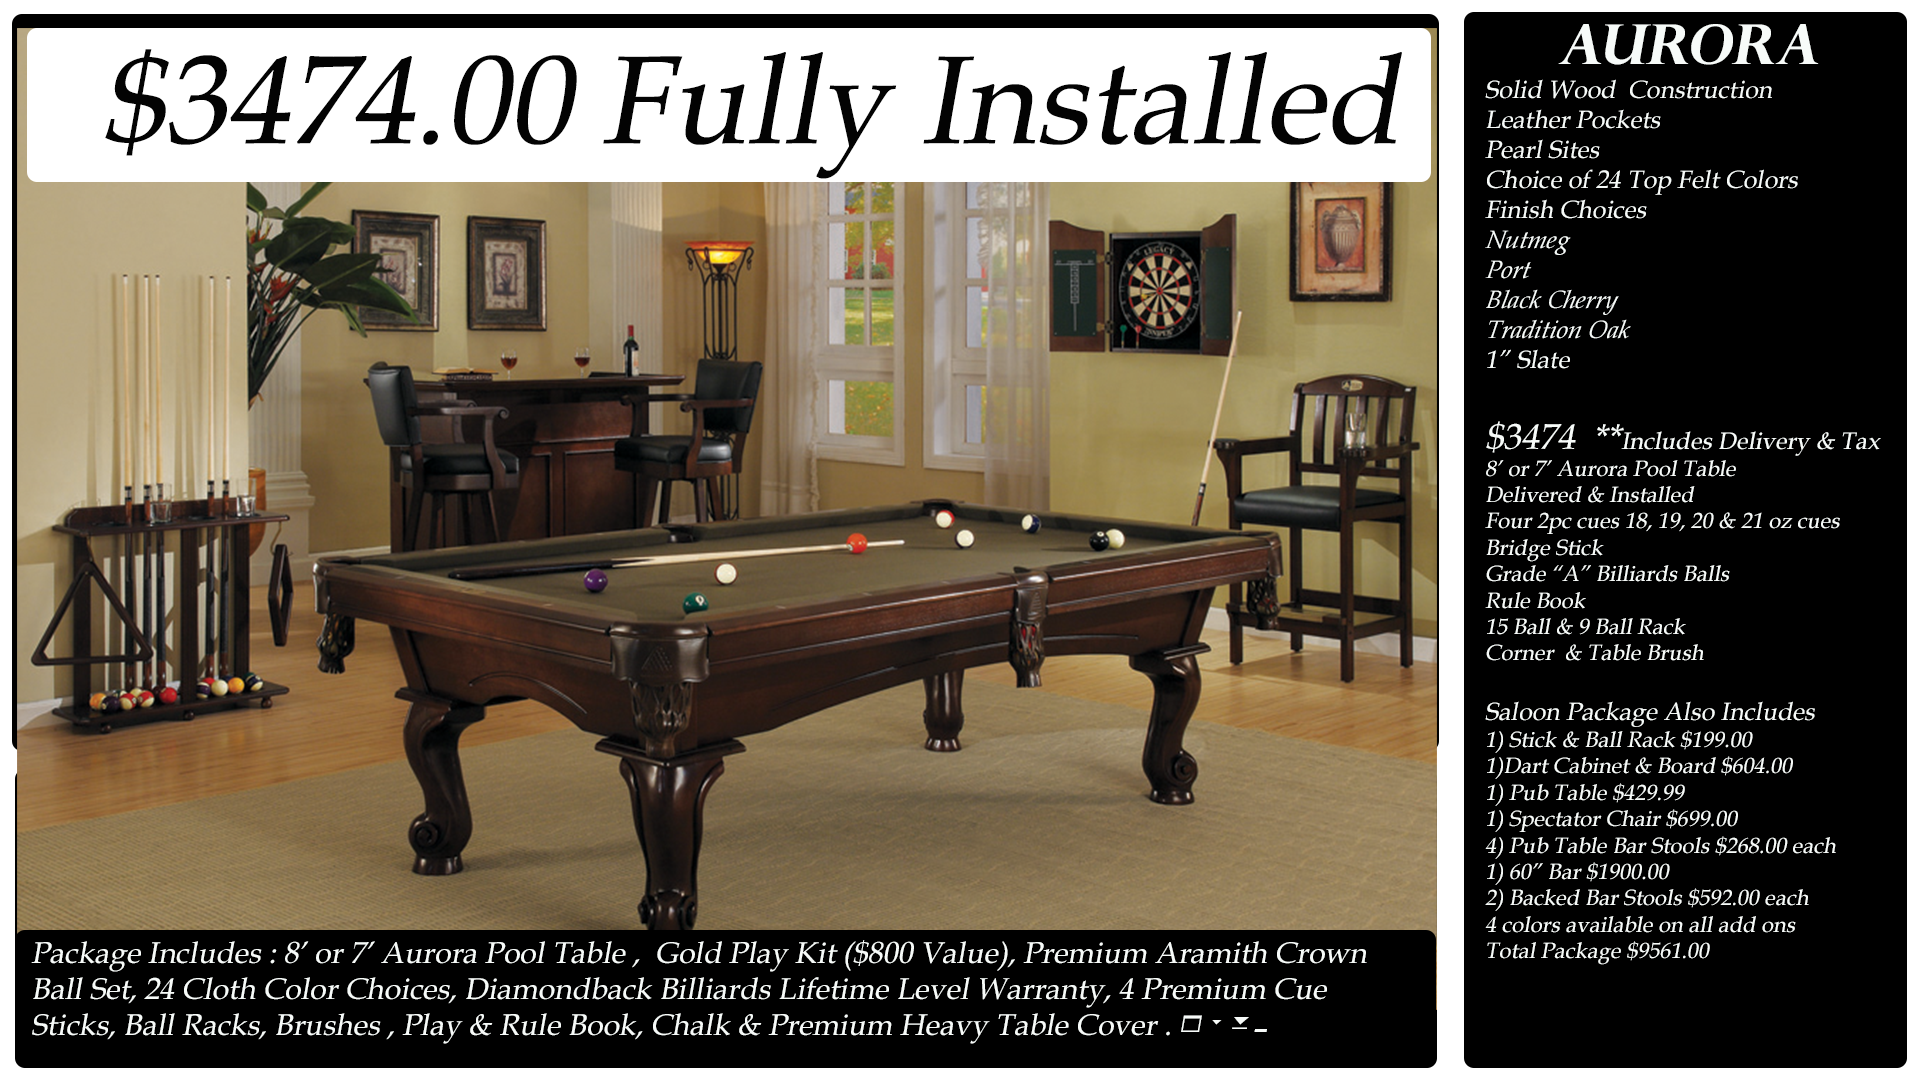 Diamondback Billiards Pool Table Packages - Black top pool table